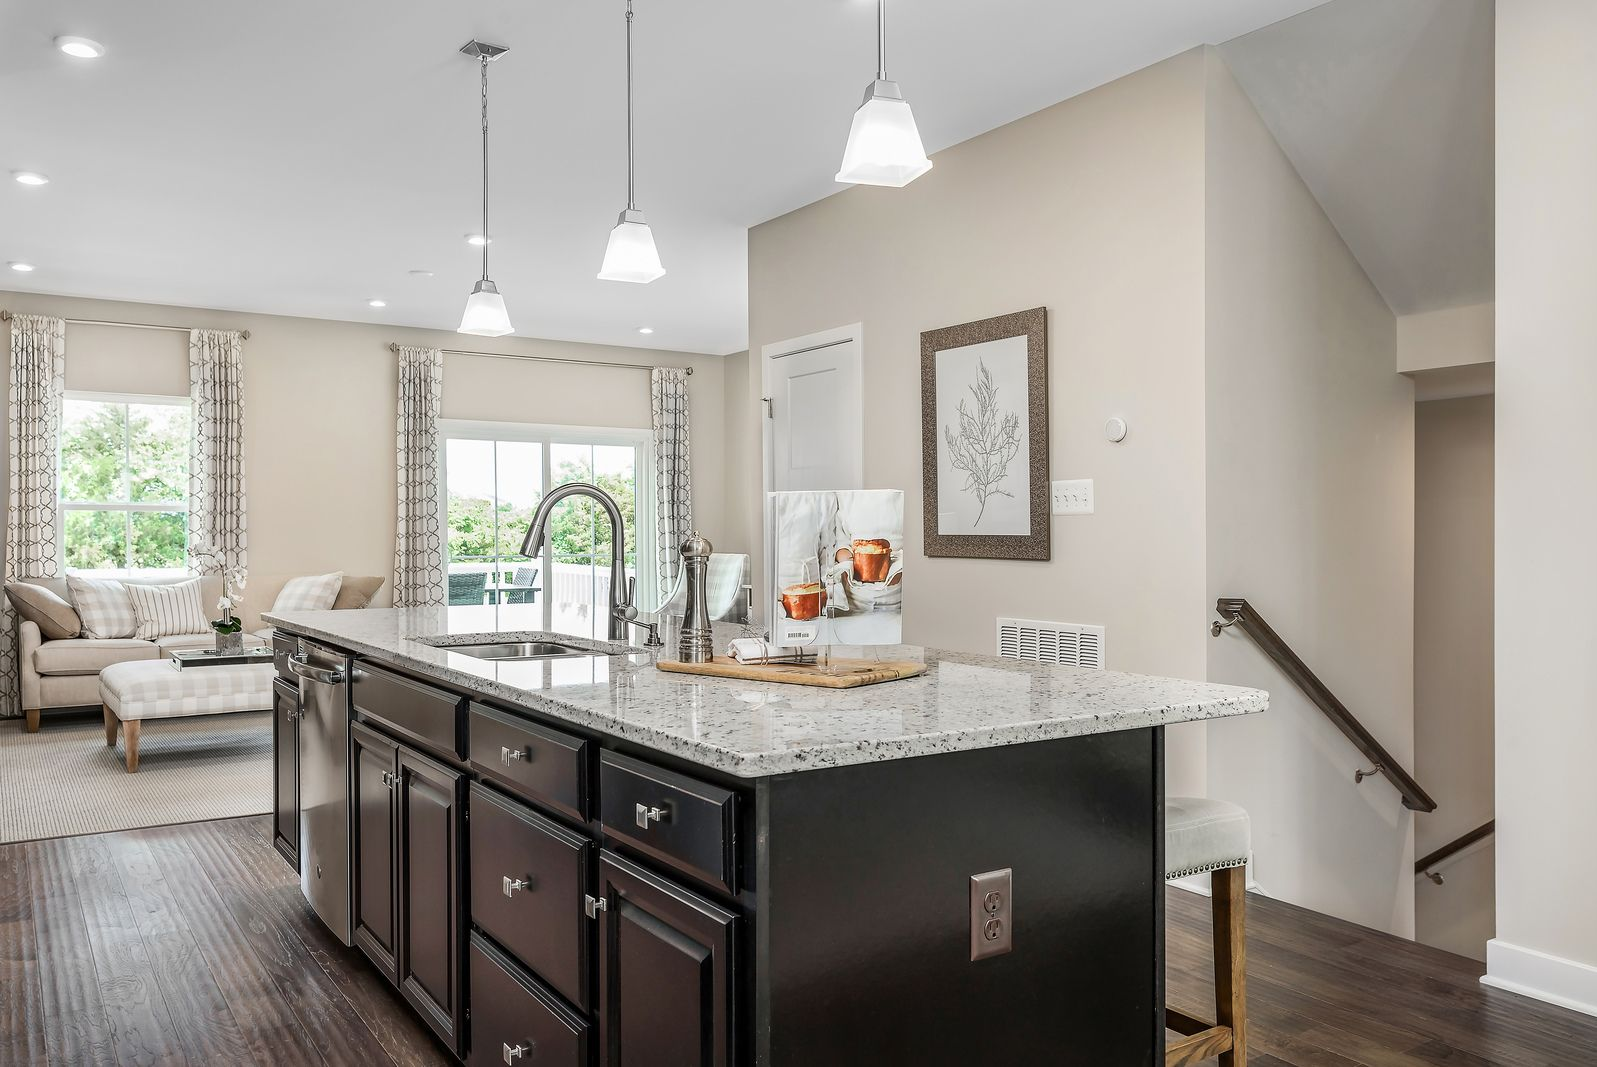 Kitchen featured in the Schubert By Ryan Homes in Morris County, NJ